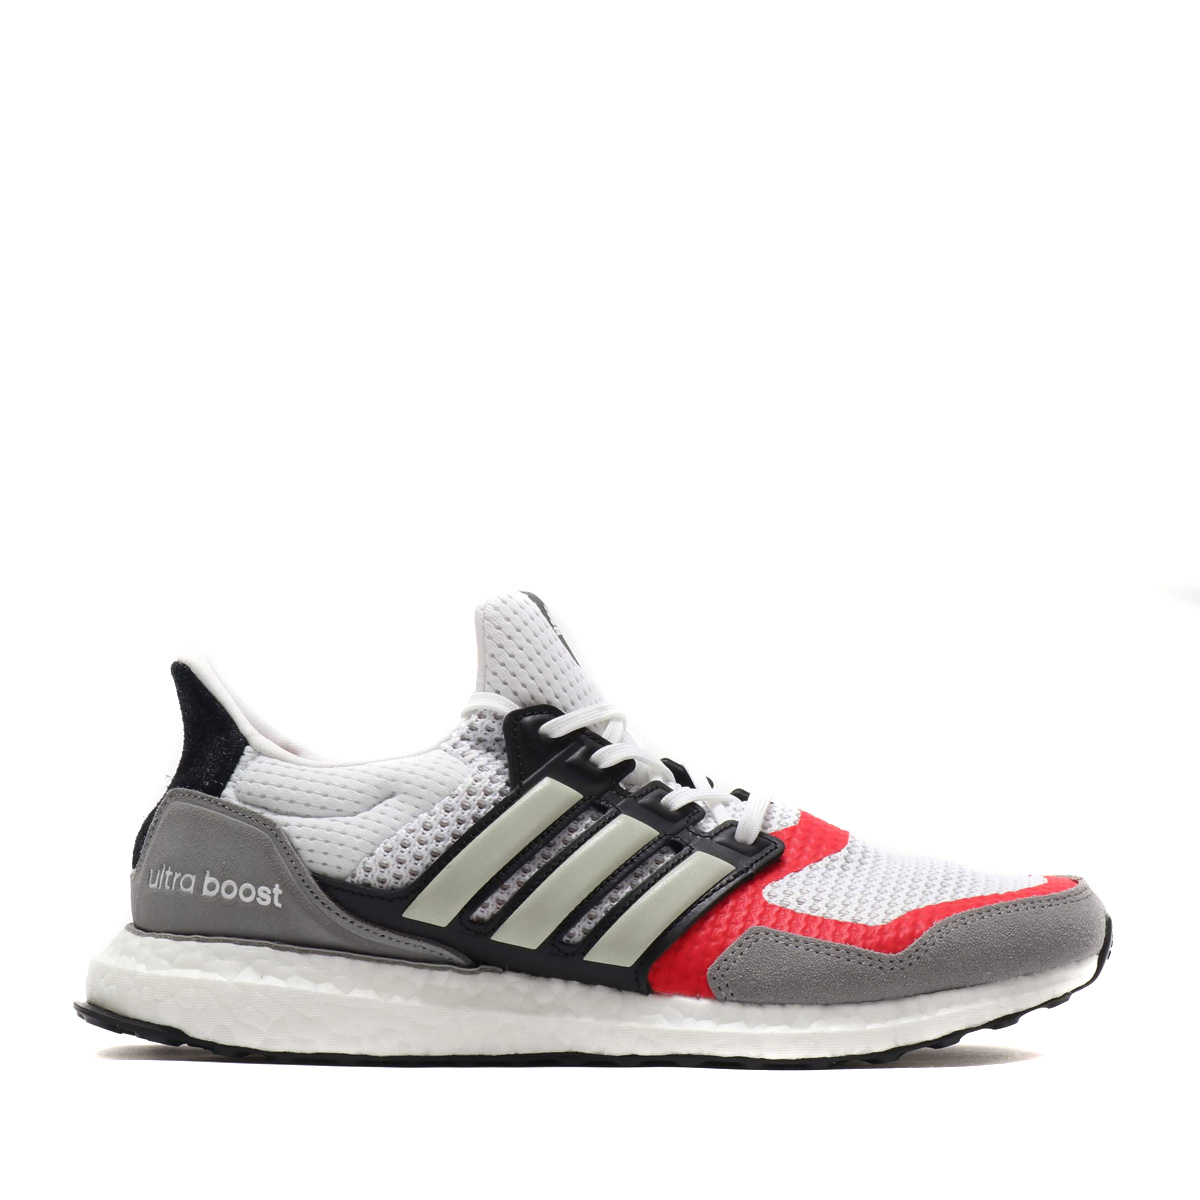 premium selection f7483 69412 adidas UltraBOOST S & L (RUNNING WHITE/GREY TWO/SCARLET) (Adidas ultra  boost S & L)